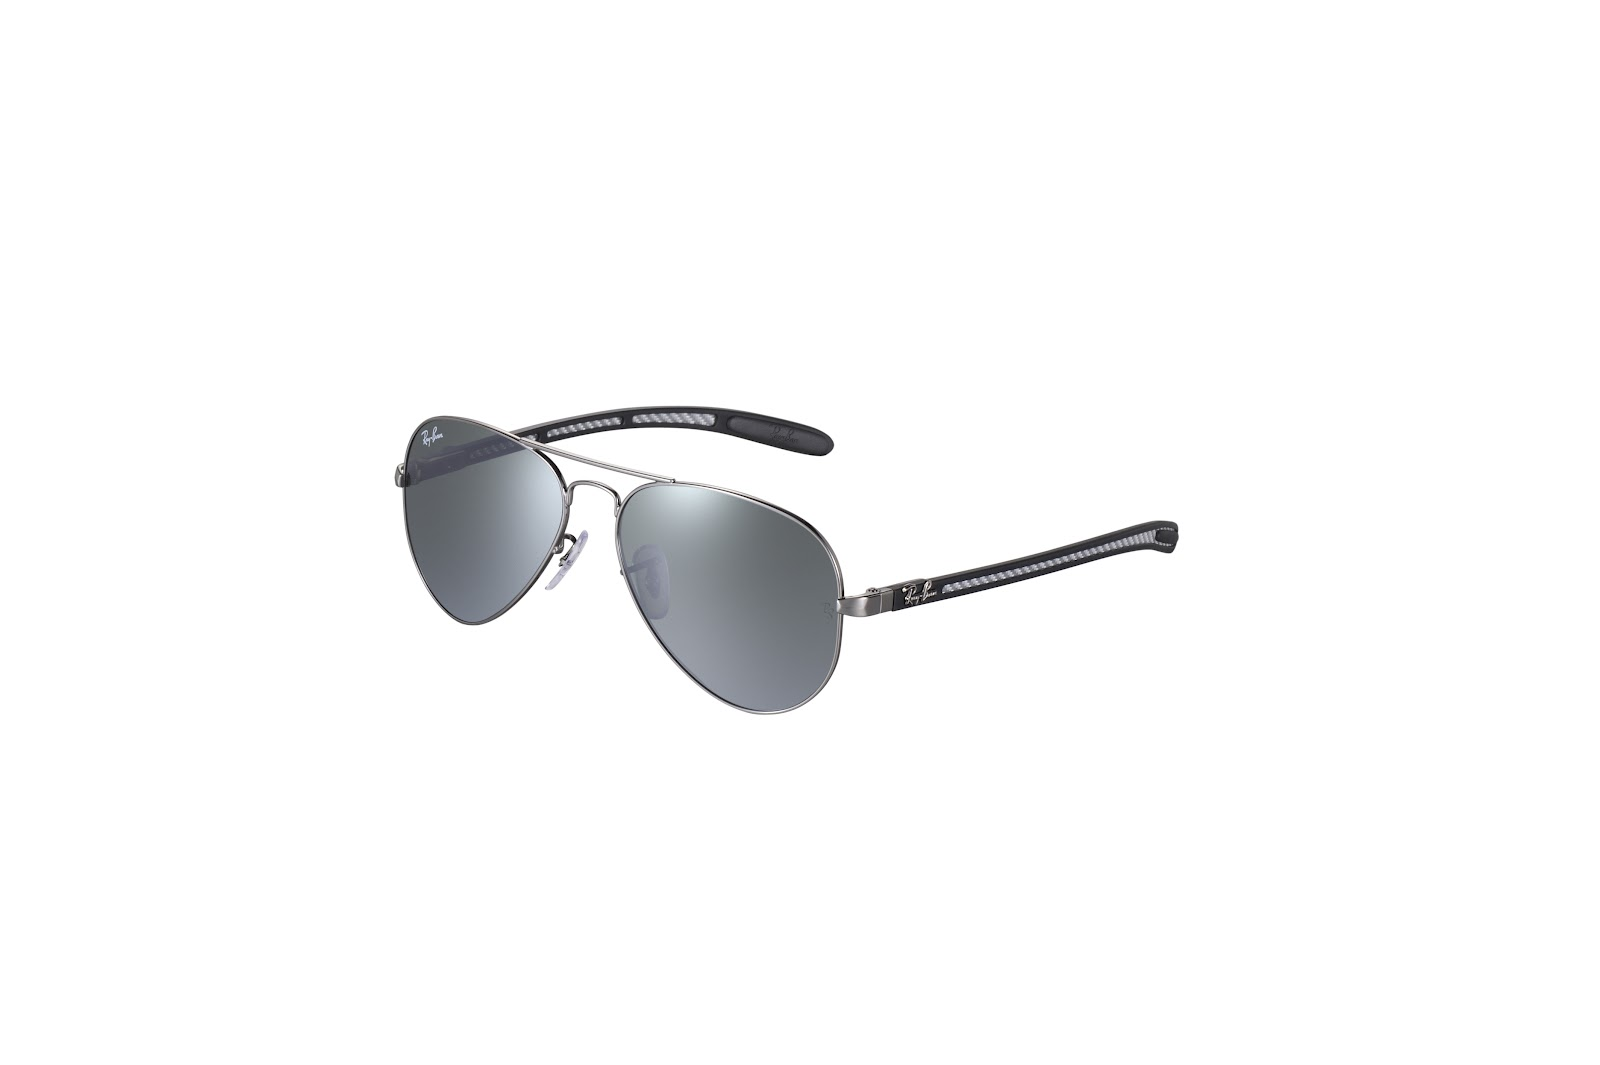 picture regarding Sunglass Hut Printable Coupon identified as Hut Sungles Ray Ban ISEFAC Alternance